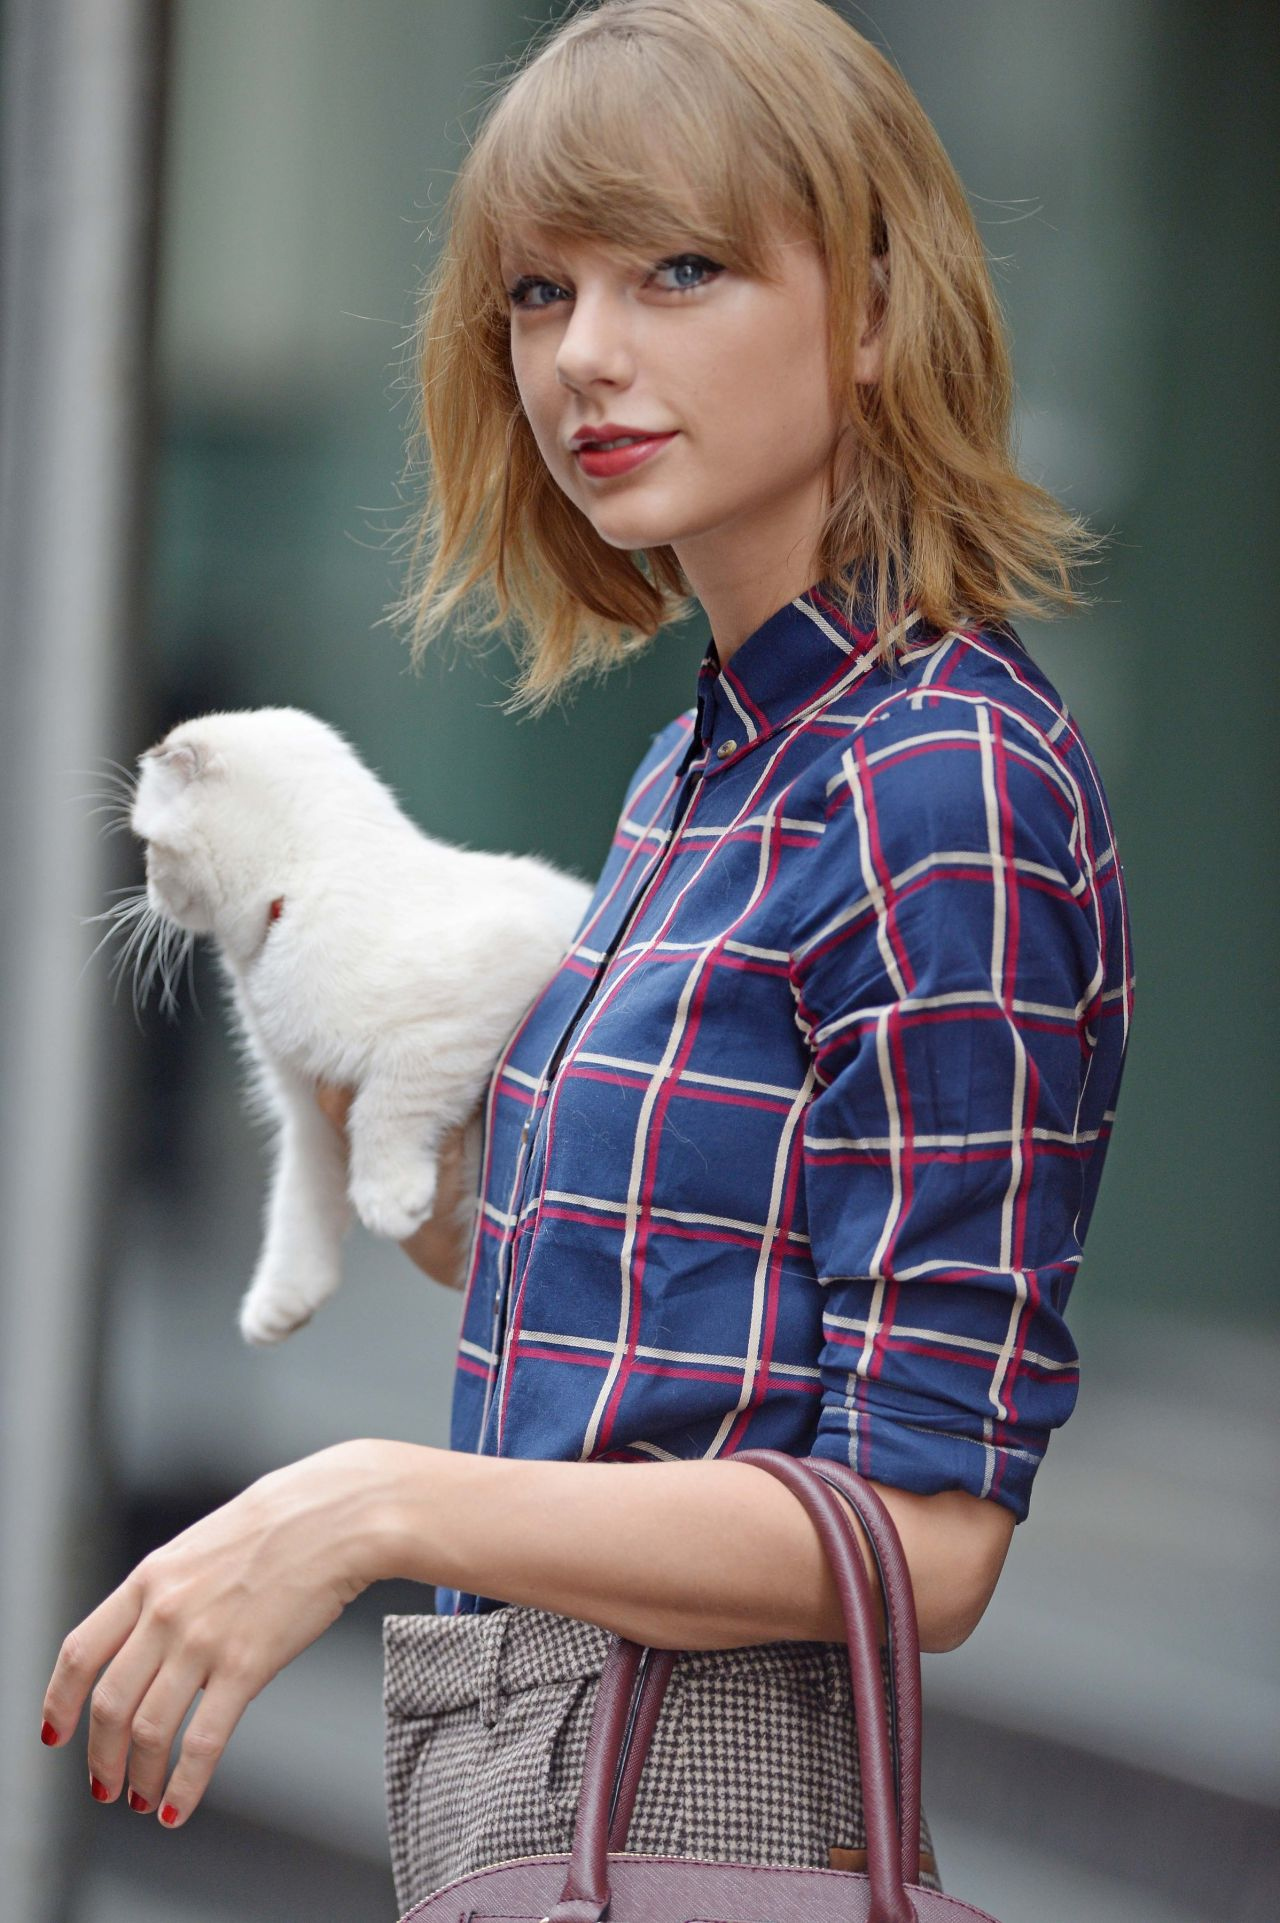 Taylor-Swift-and-Her-Adorable-Scottish-Fold-Cats